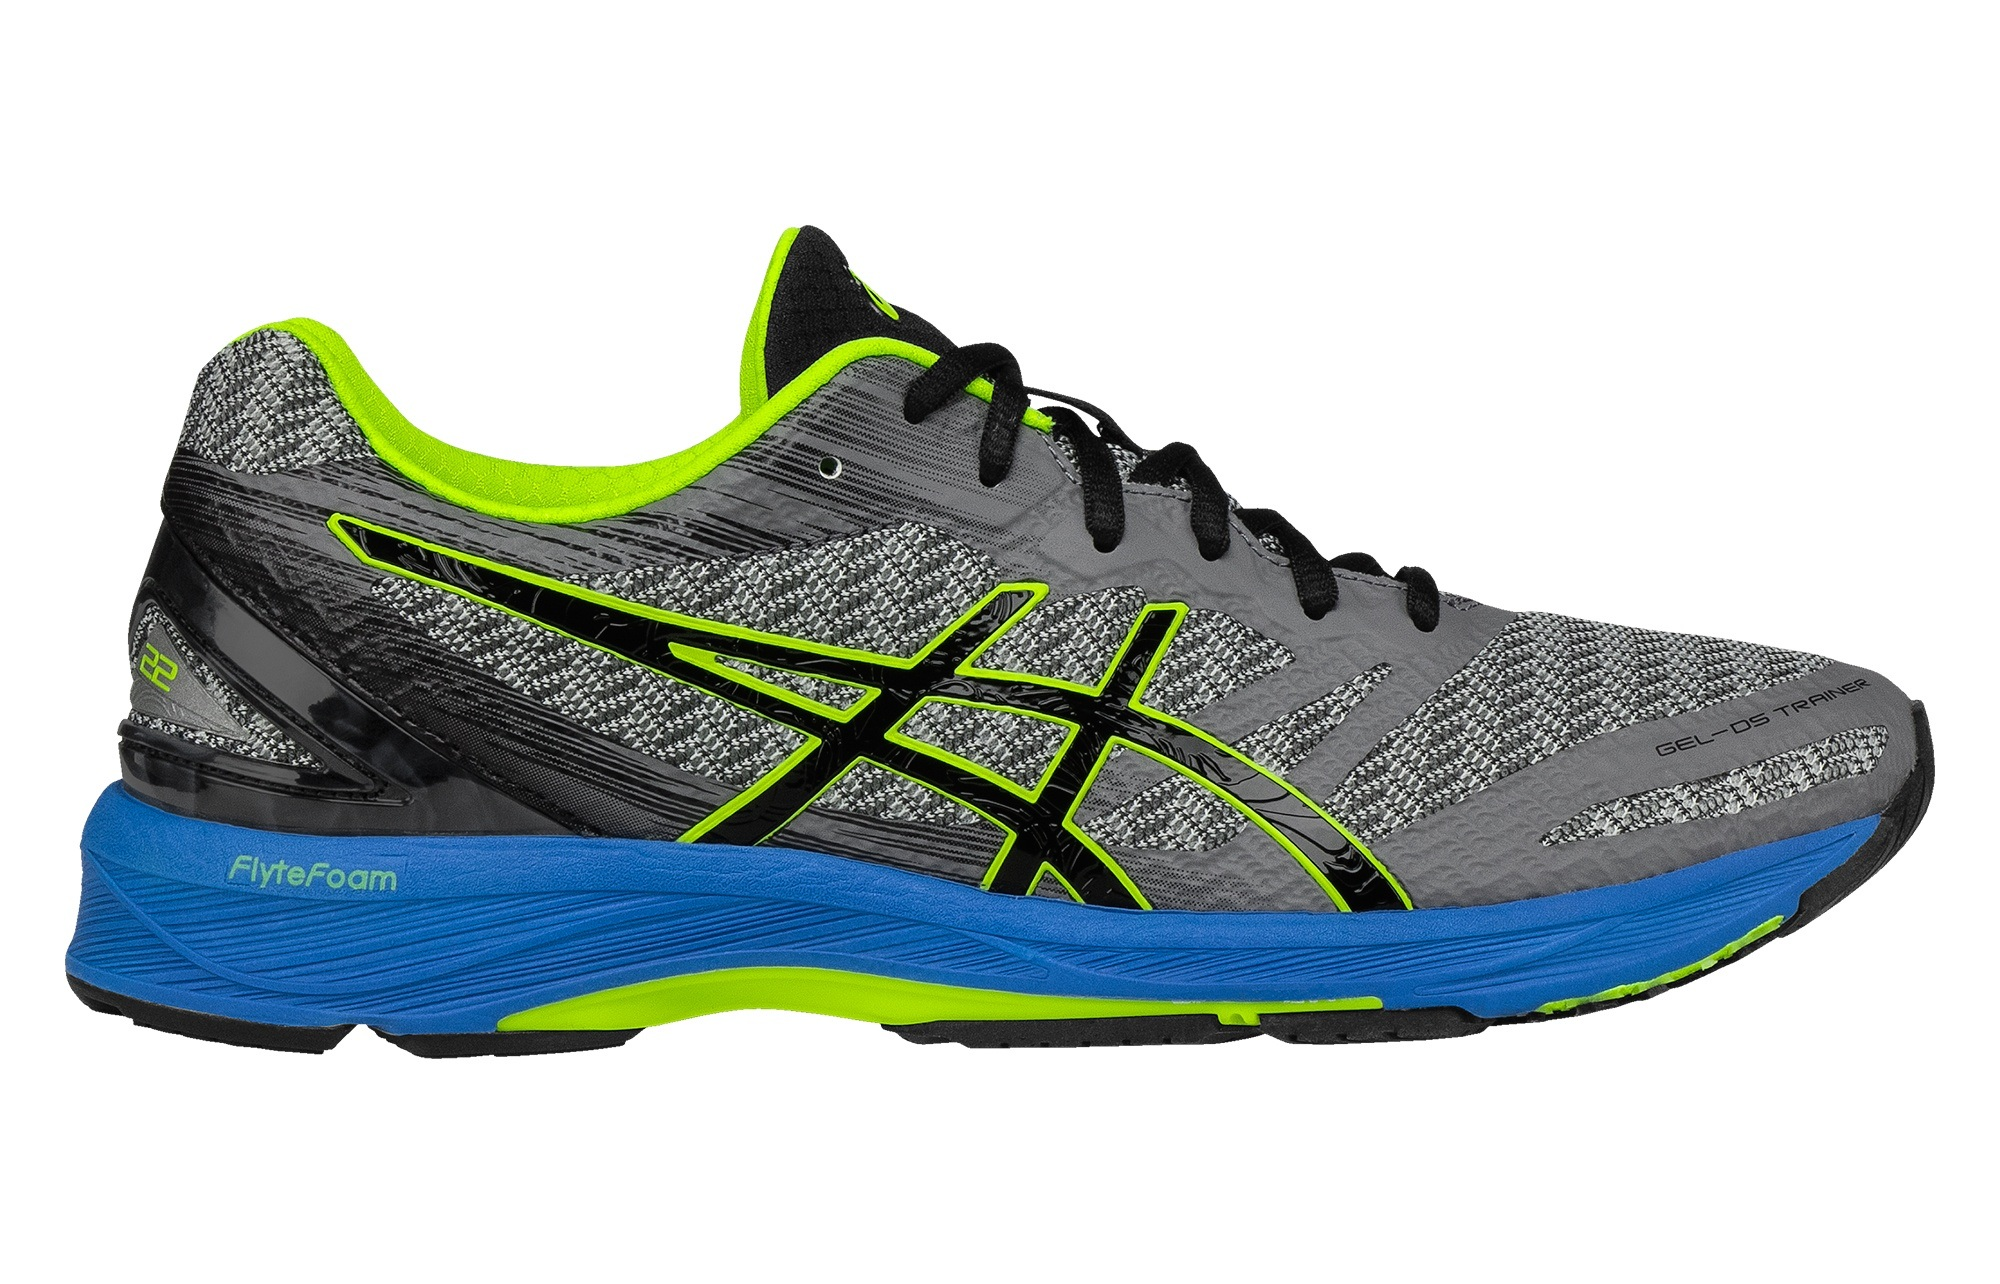 Asics Gel-DS Trainer 22 Shoes   R\u0026A Cycles